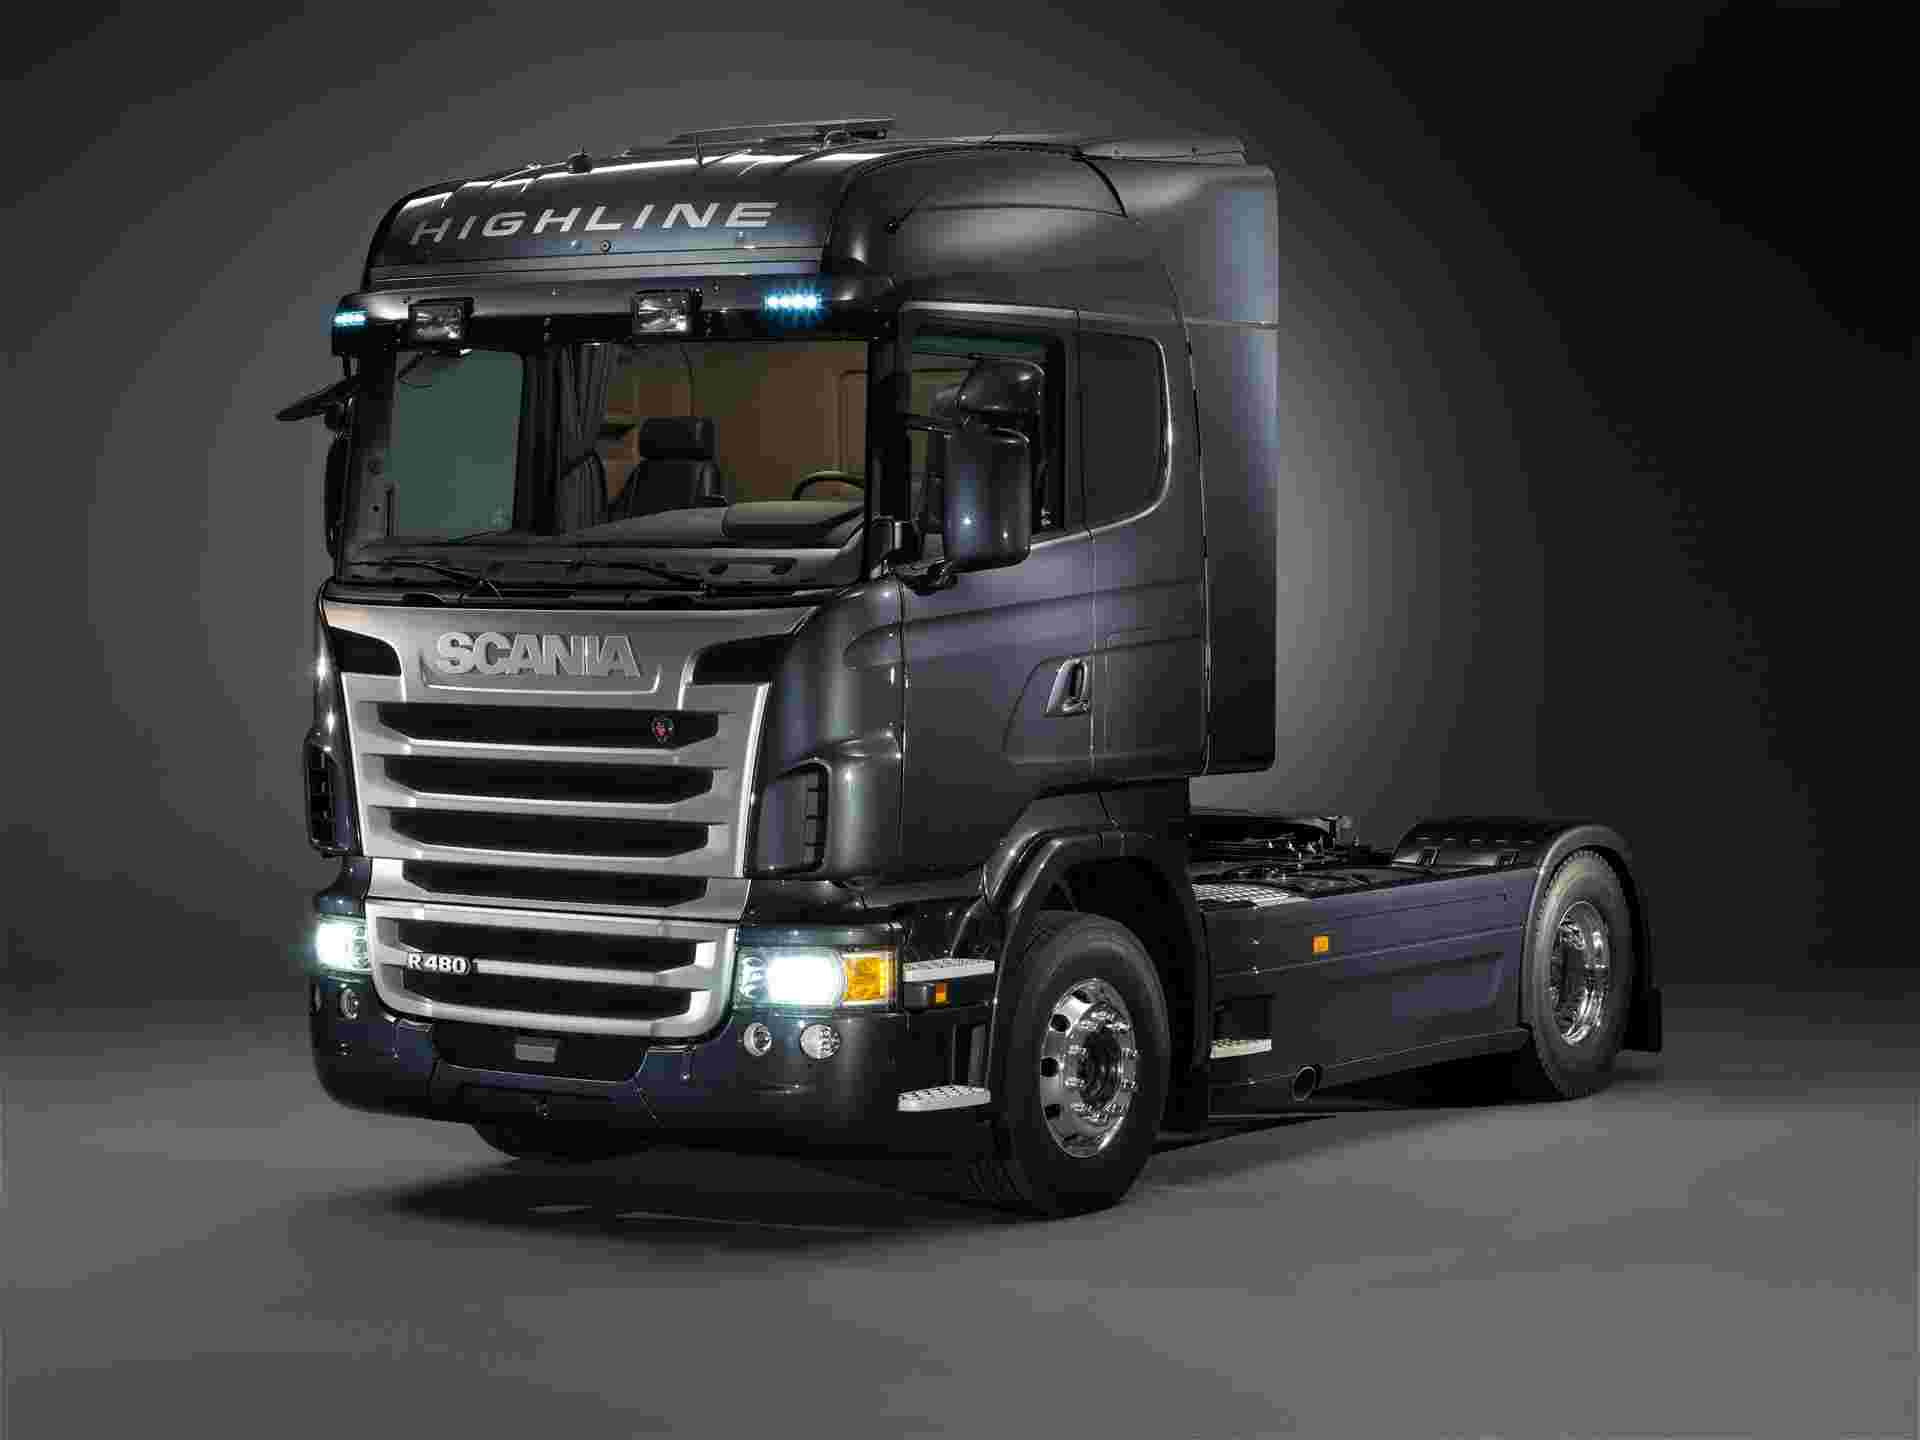 Scania r-series photo - 3